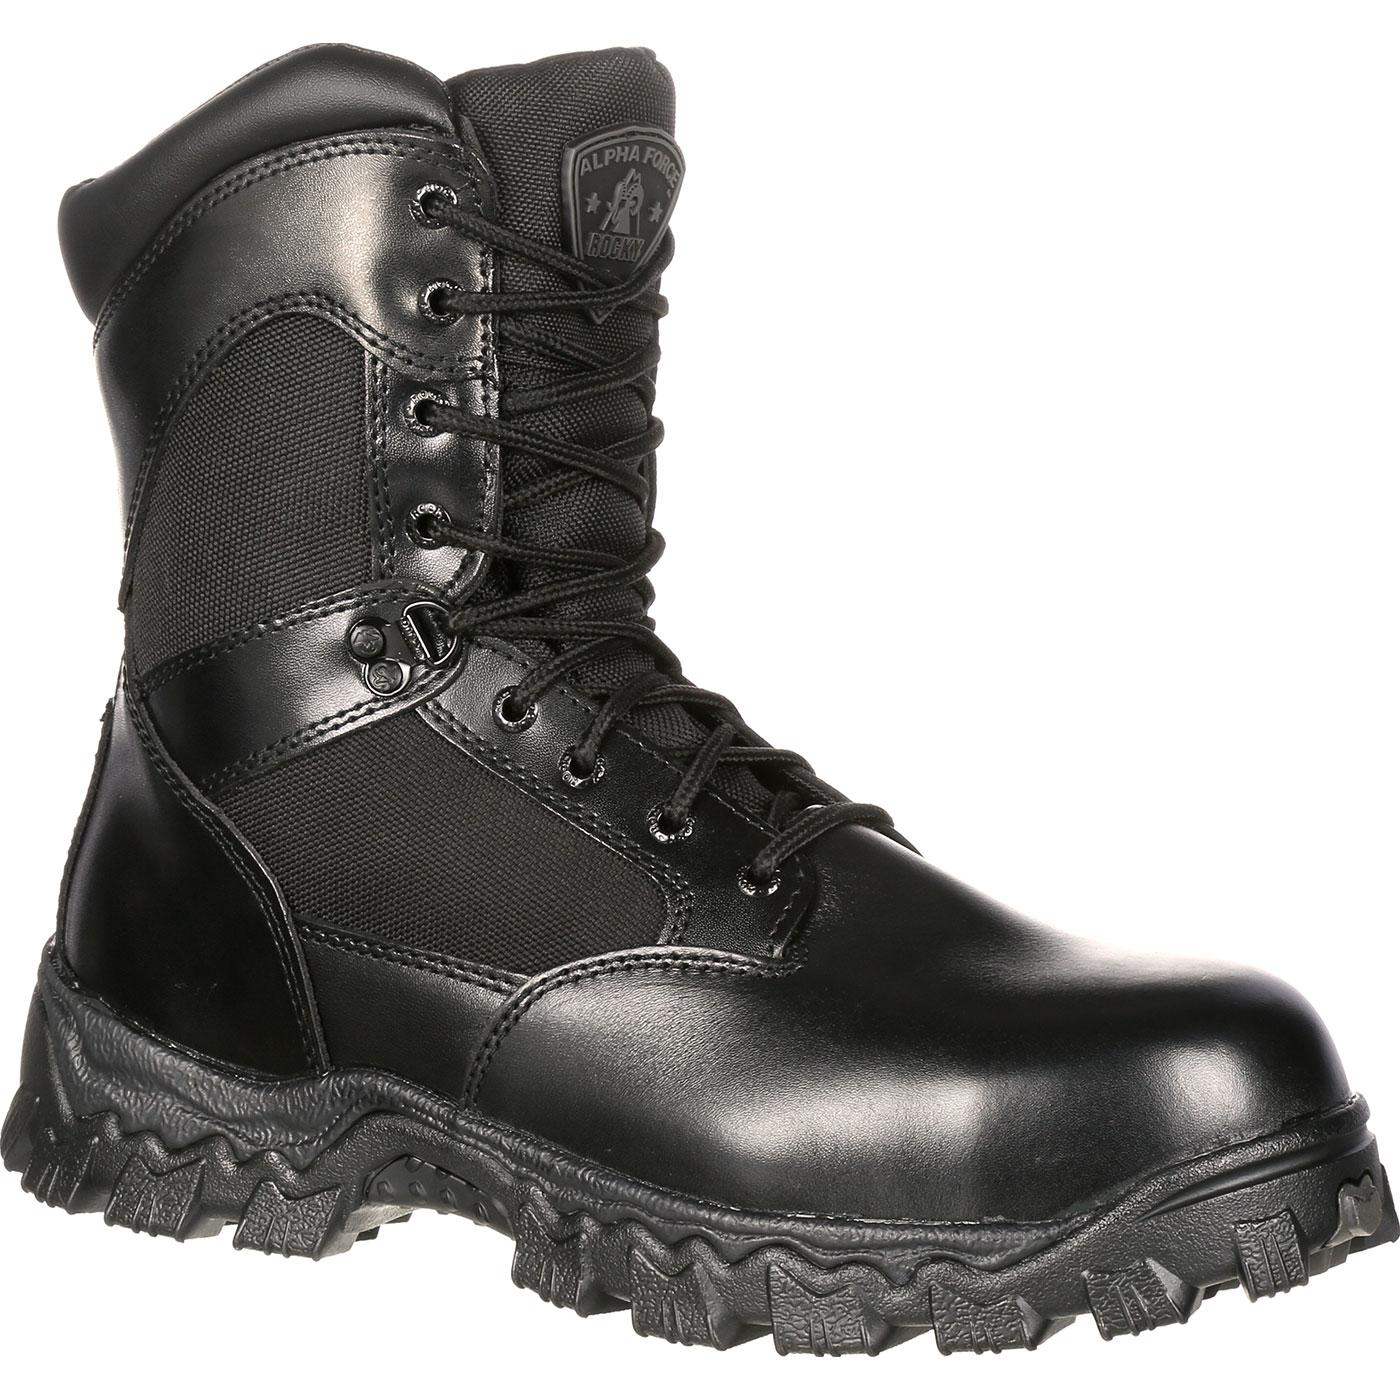 Rocky - AlphaForce Zipper Waterproof Duty Boot-Rocky Boots